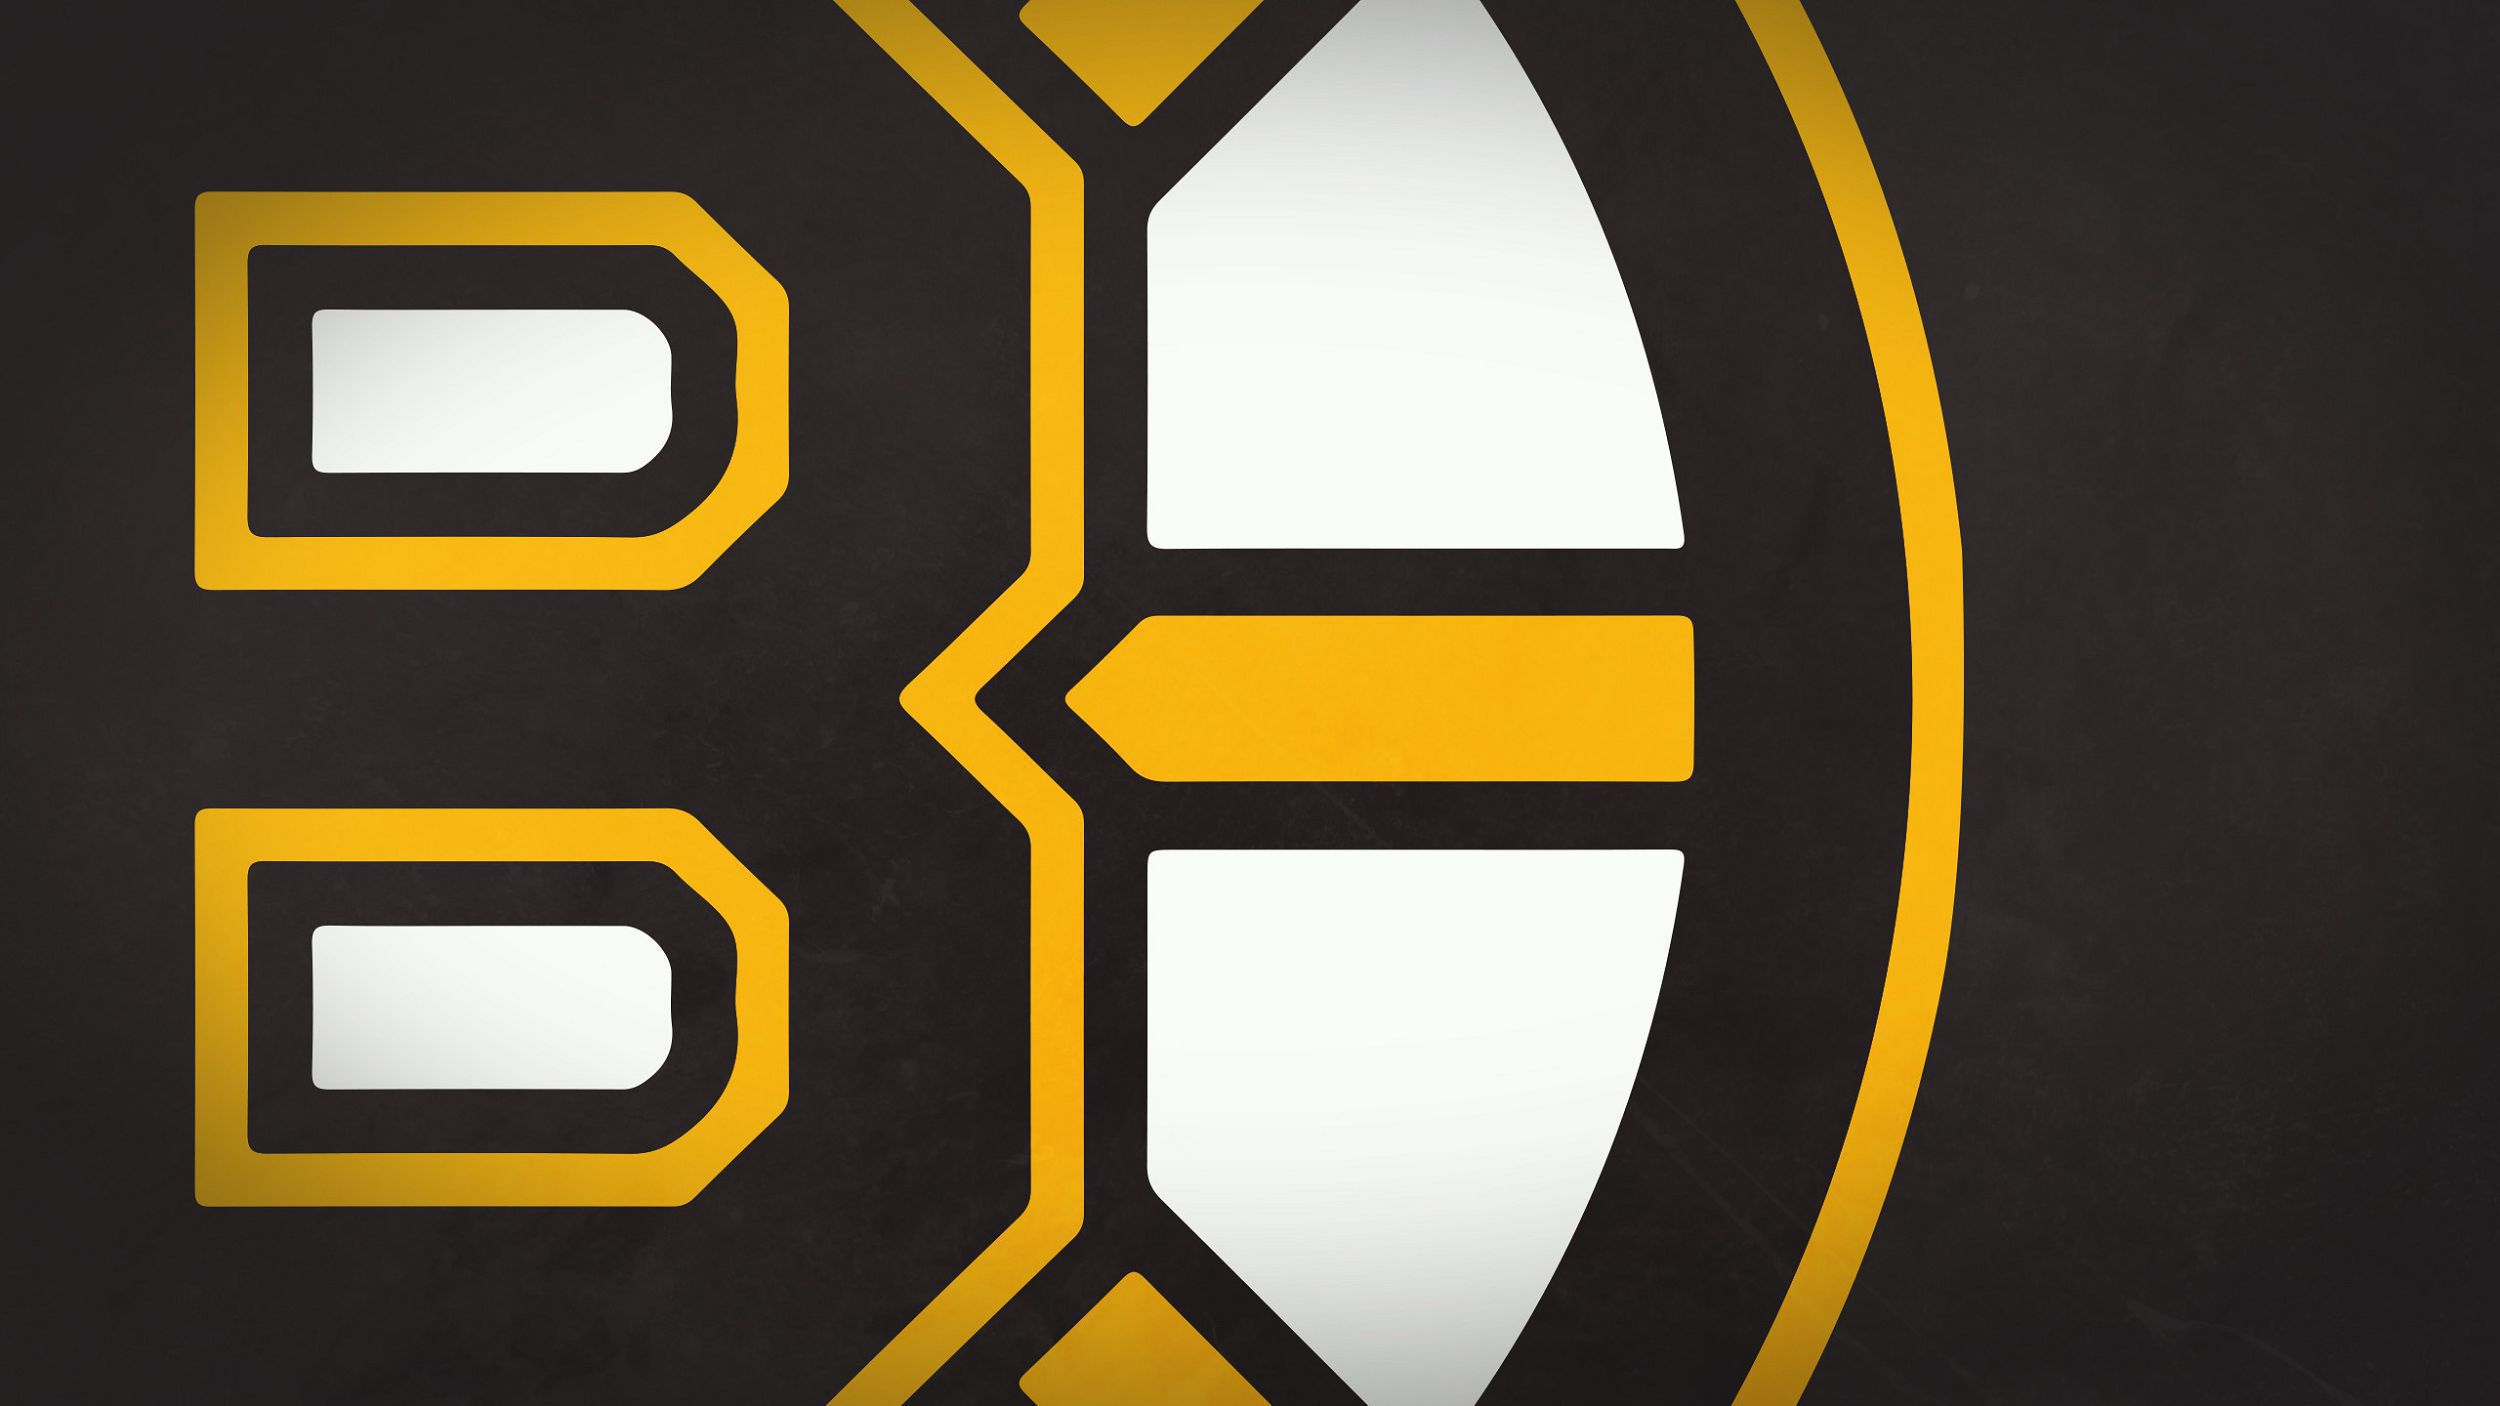 Boston Bruins Wallpaper Pack